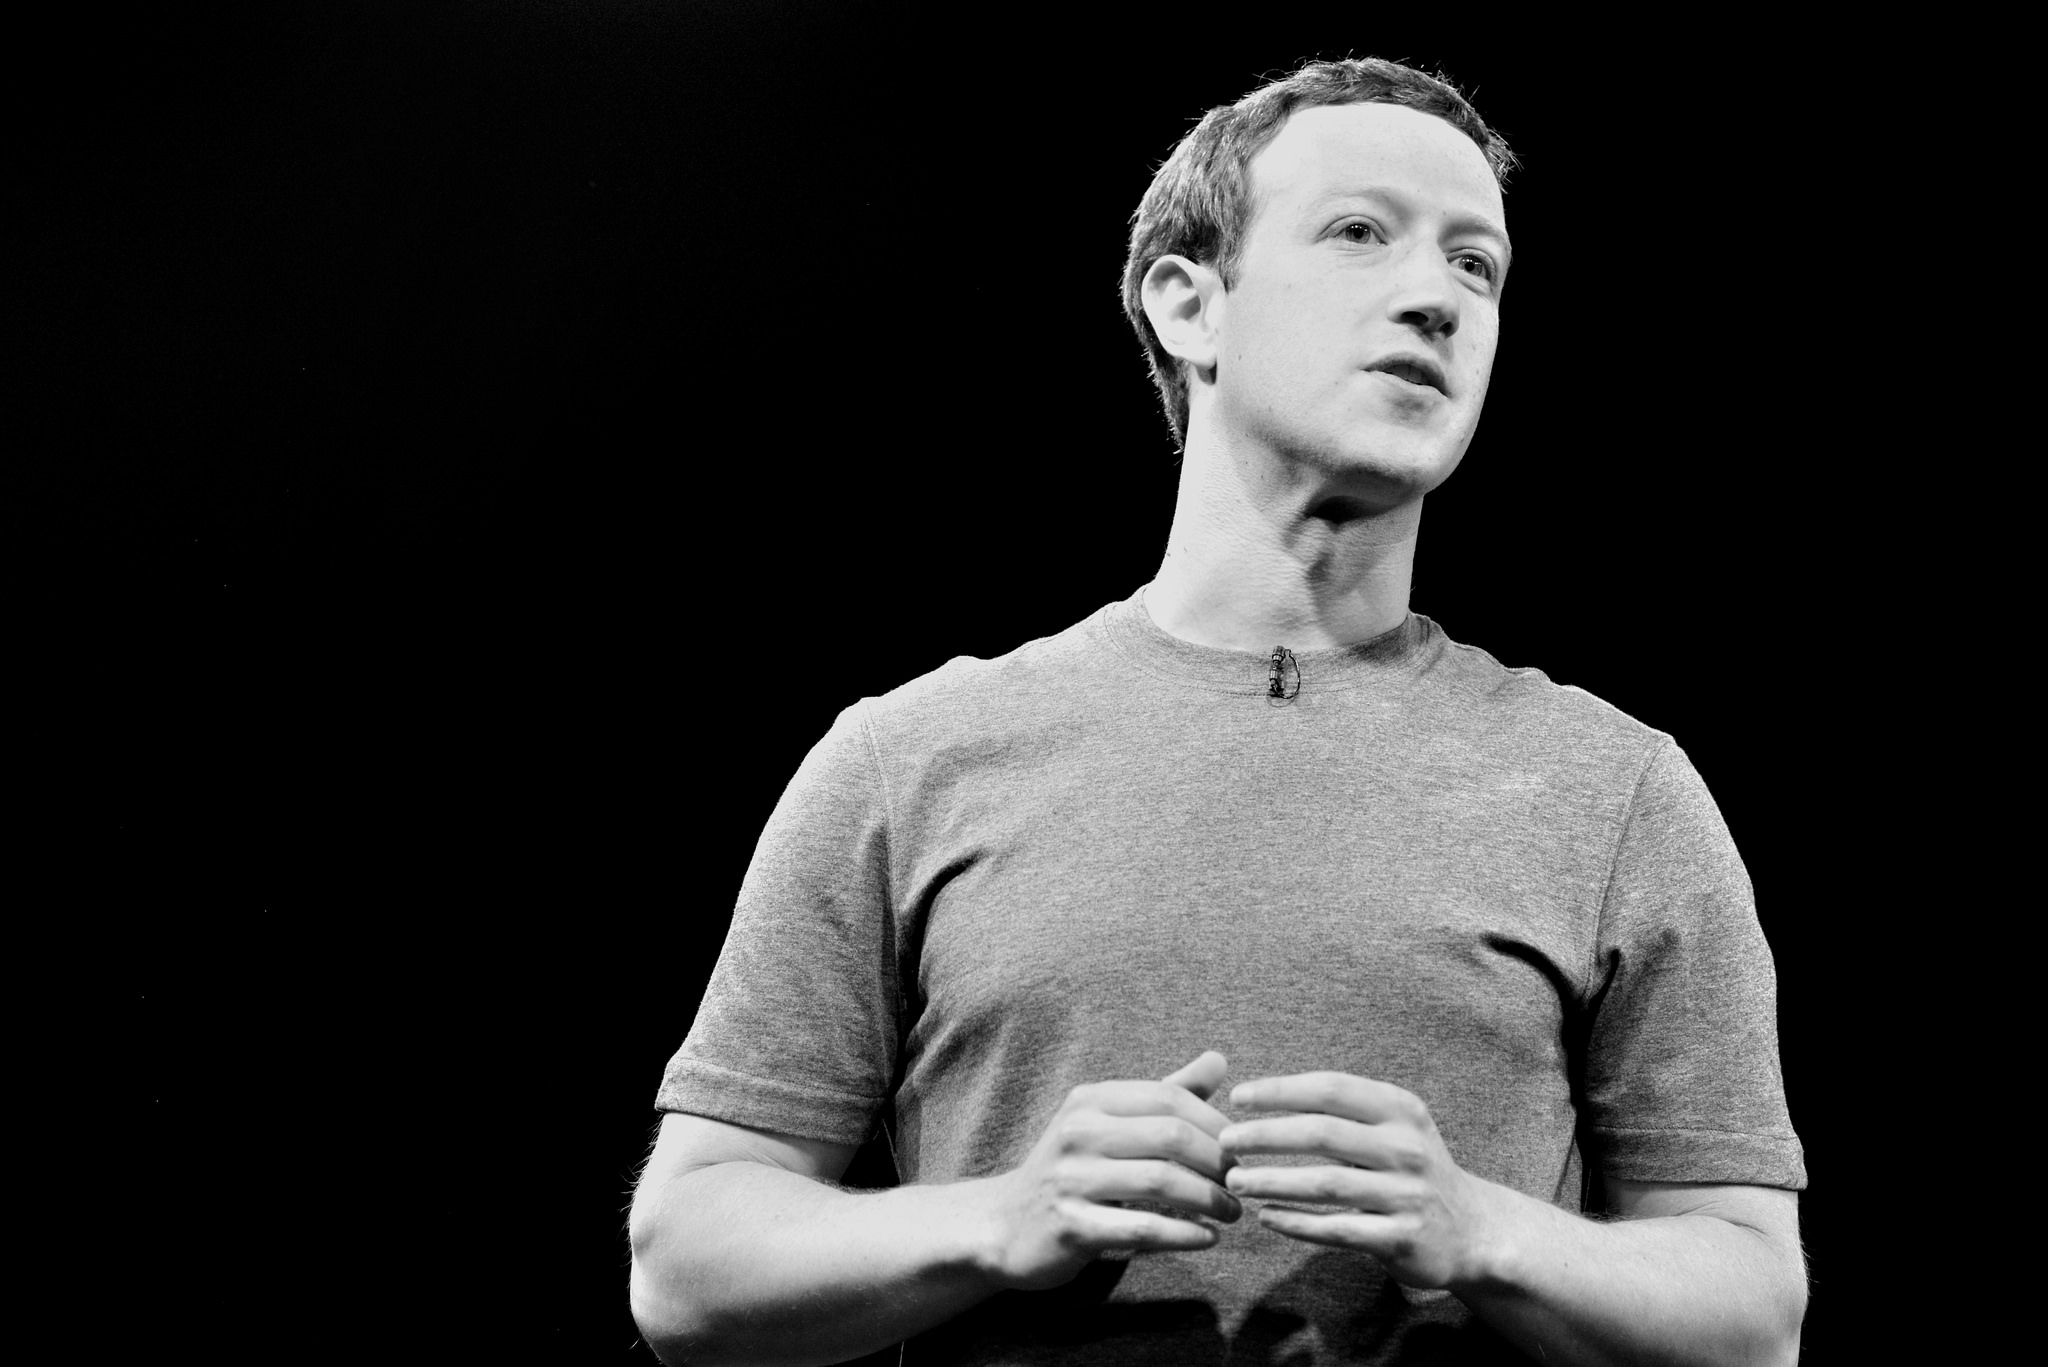 Facebook's Zuckerberg shows savvy in human interaction